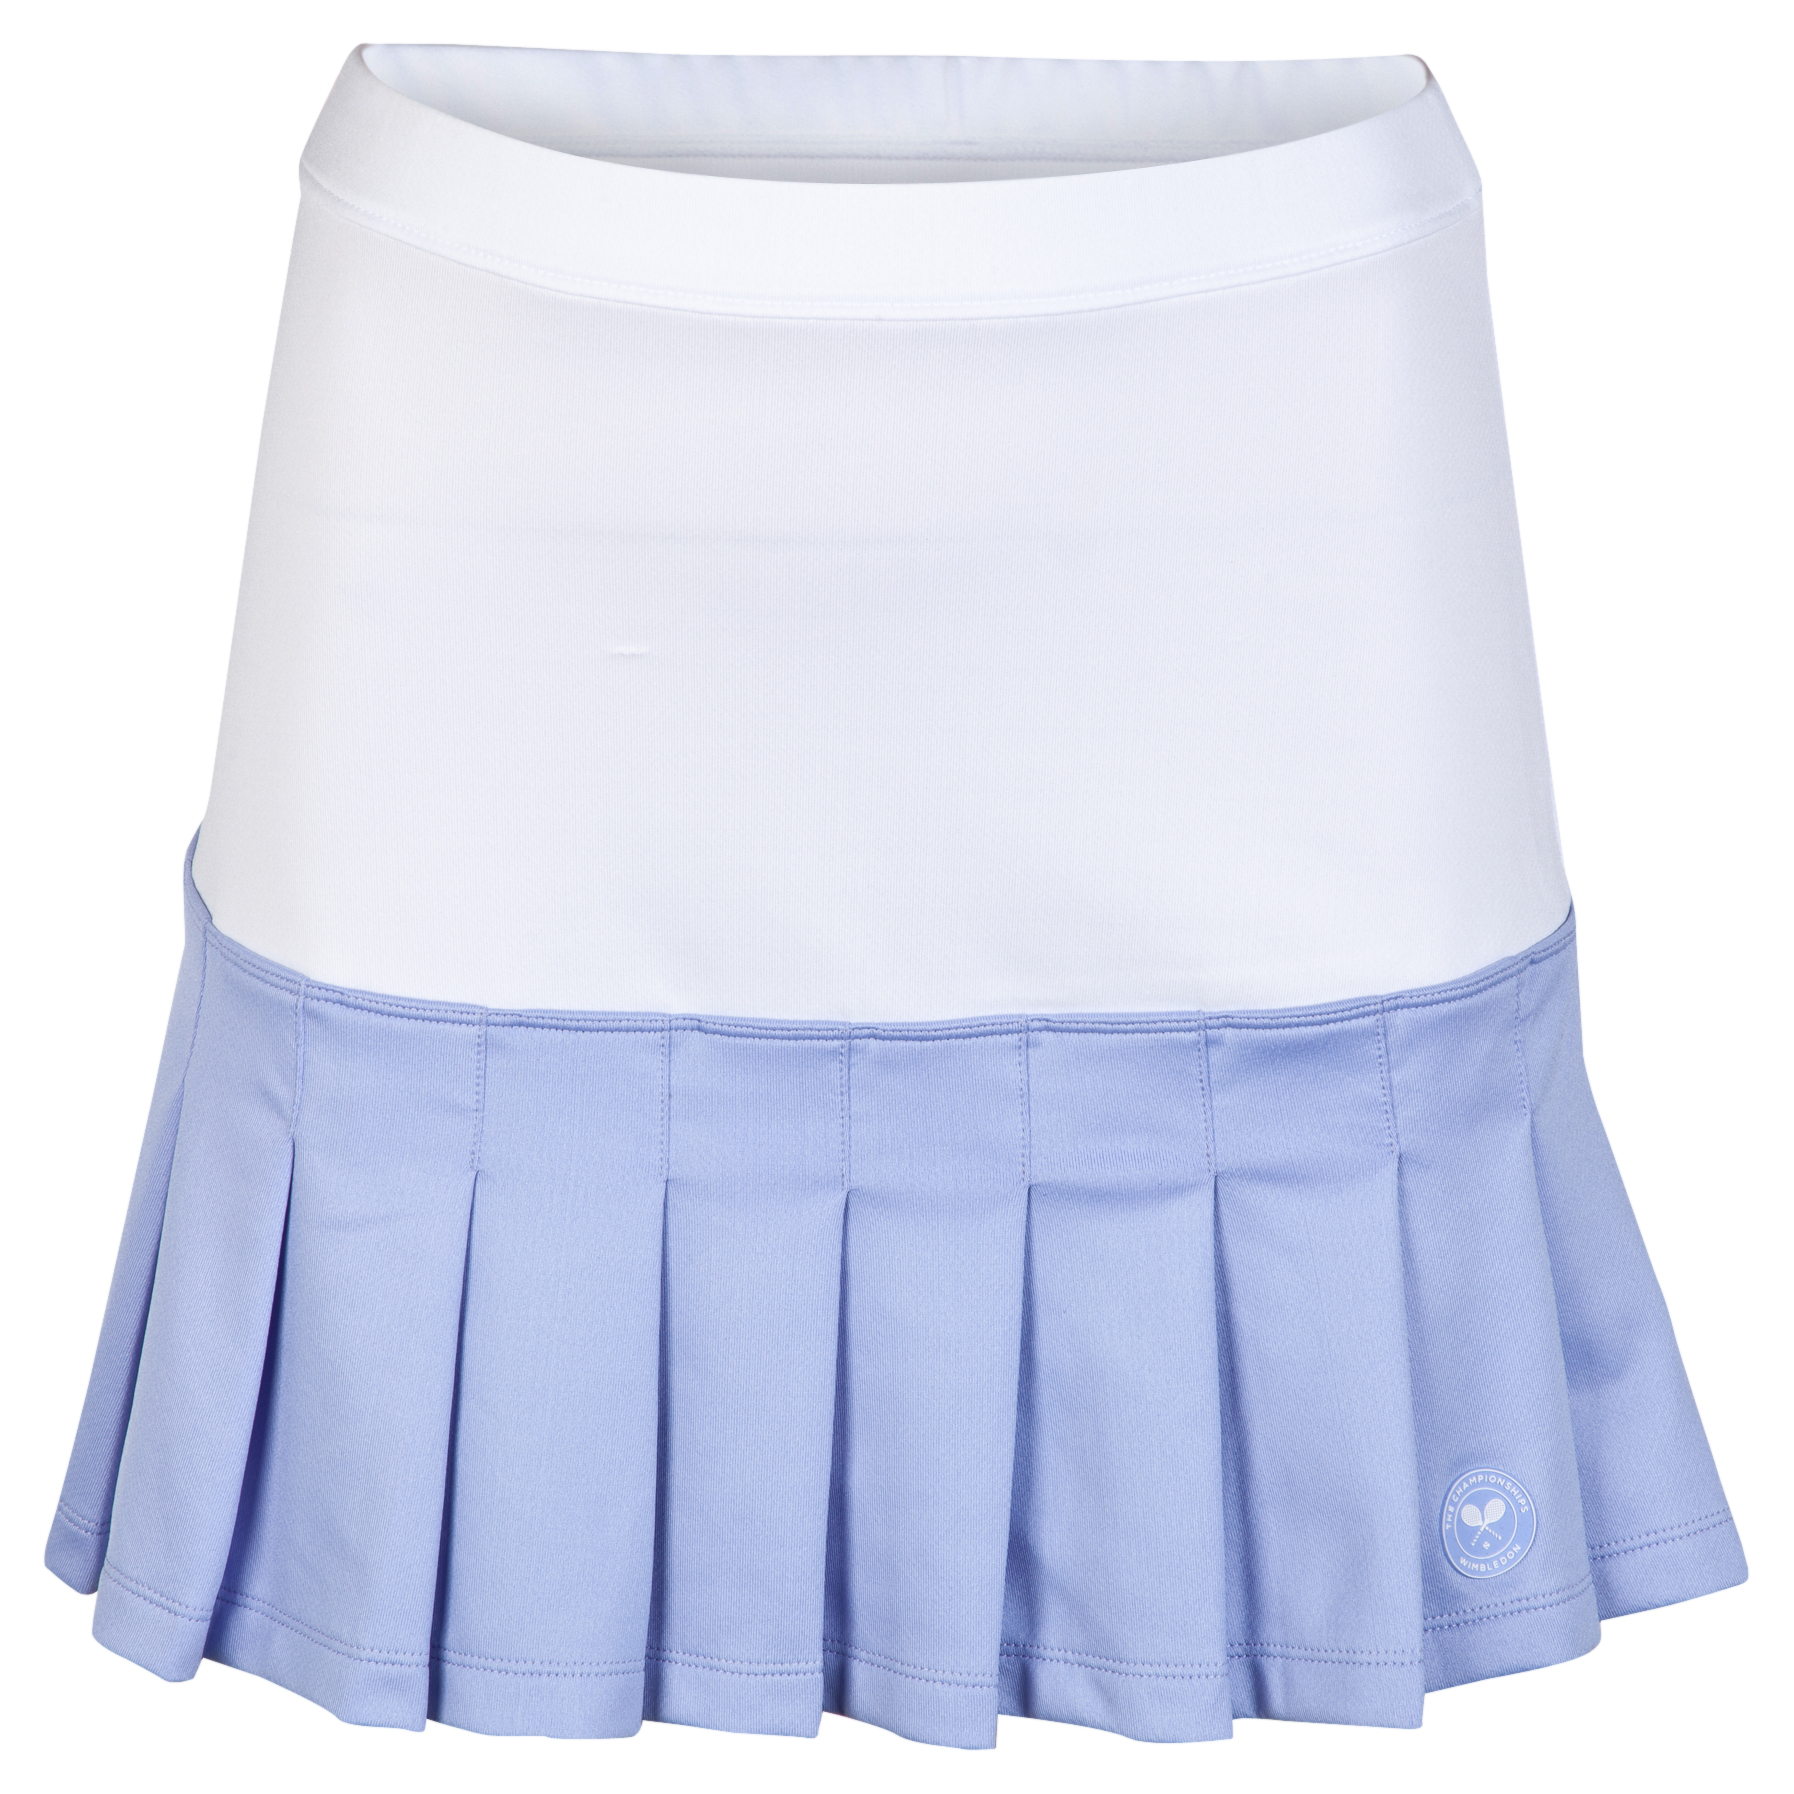 Wimbledon Pleated Skirt - Ladies White